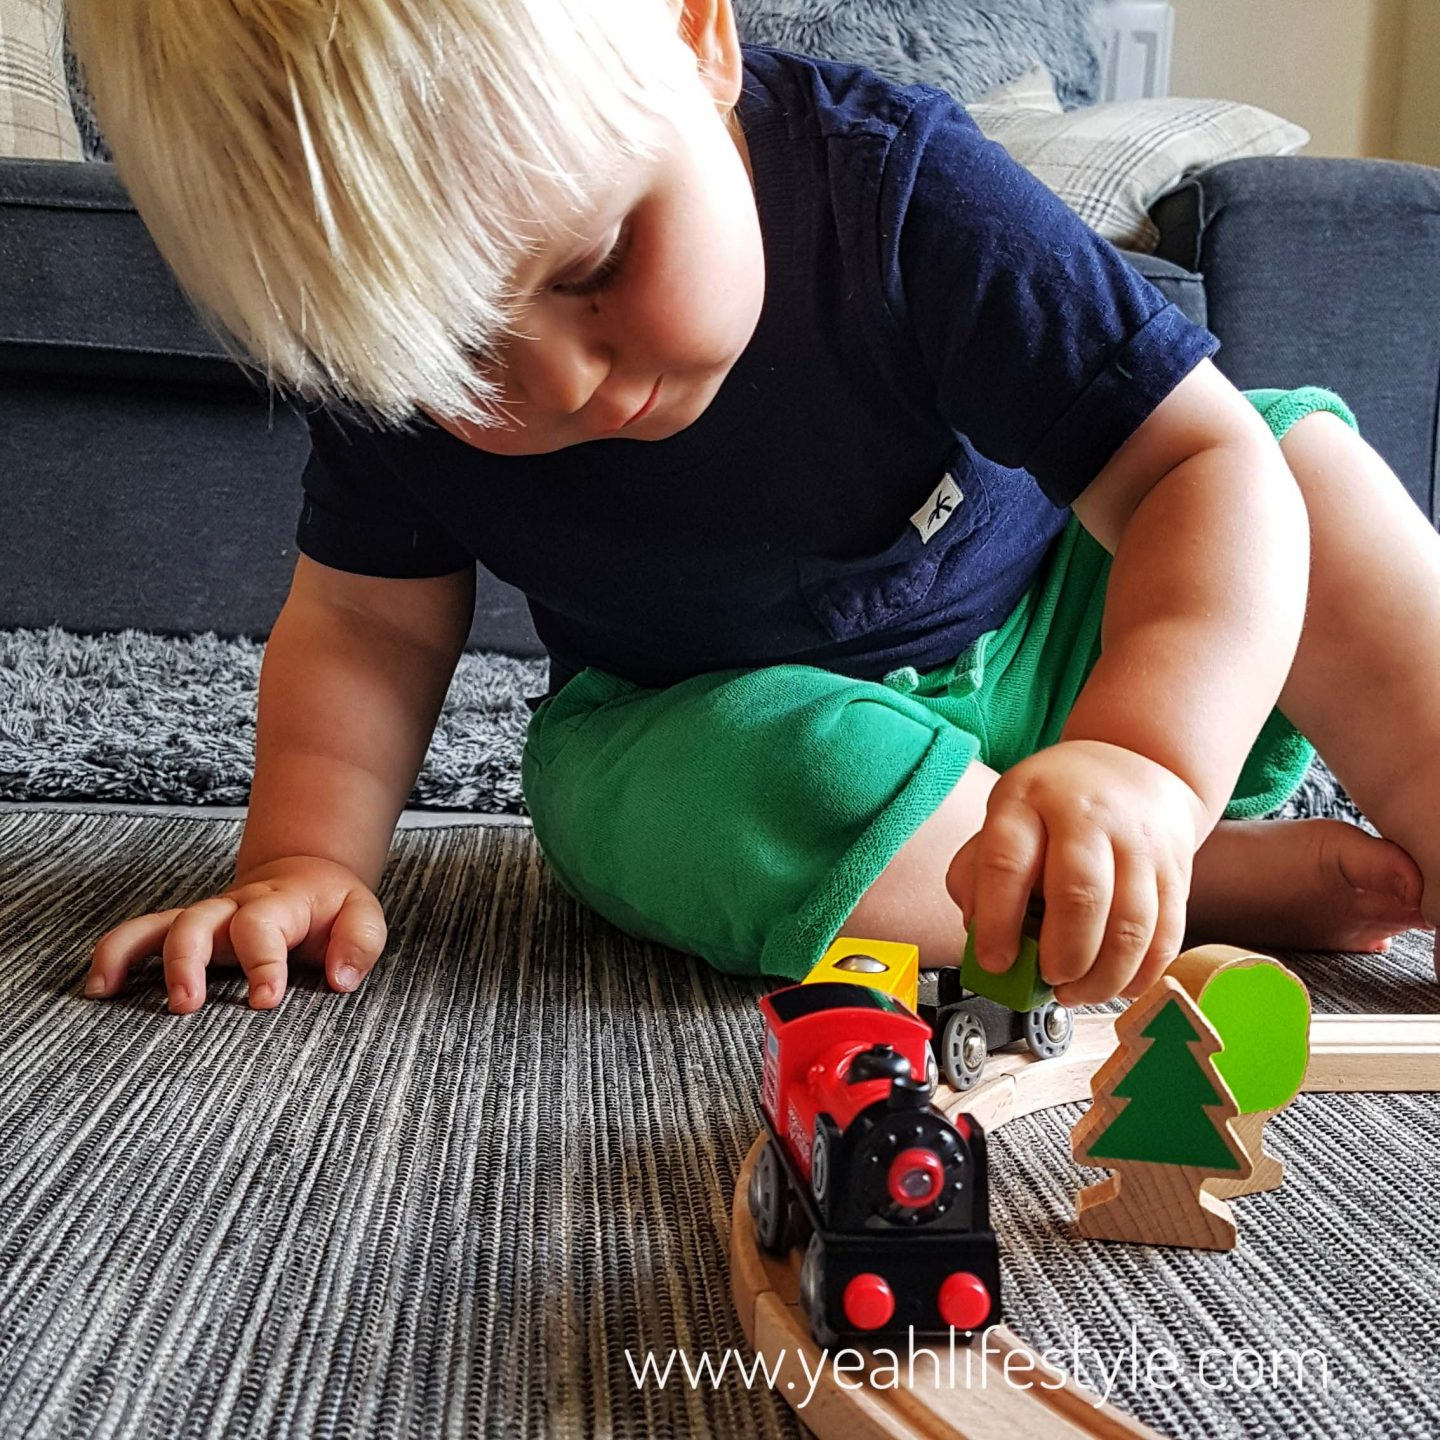 Hape-kids-wooden-train-set-blogger-review-toys-battery-toddler-play-gift